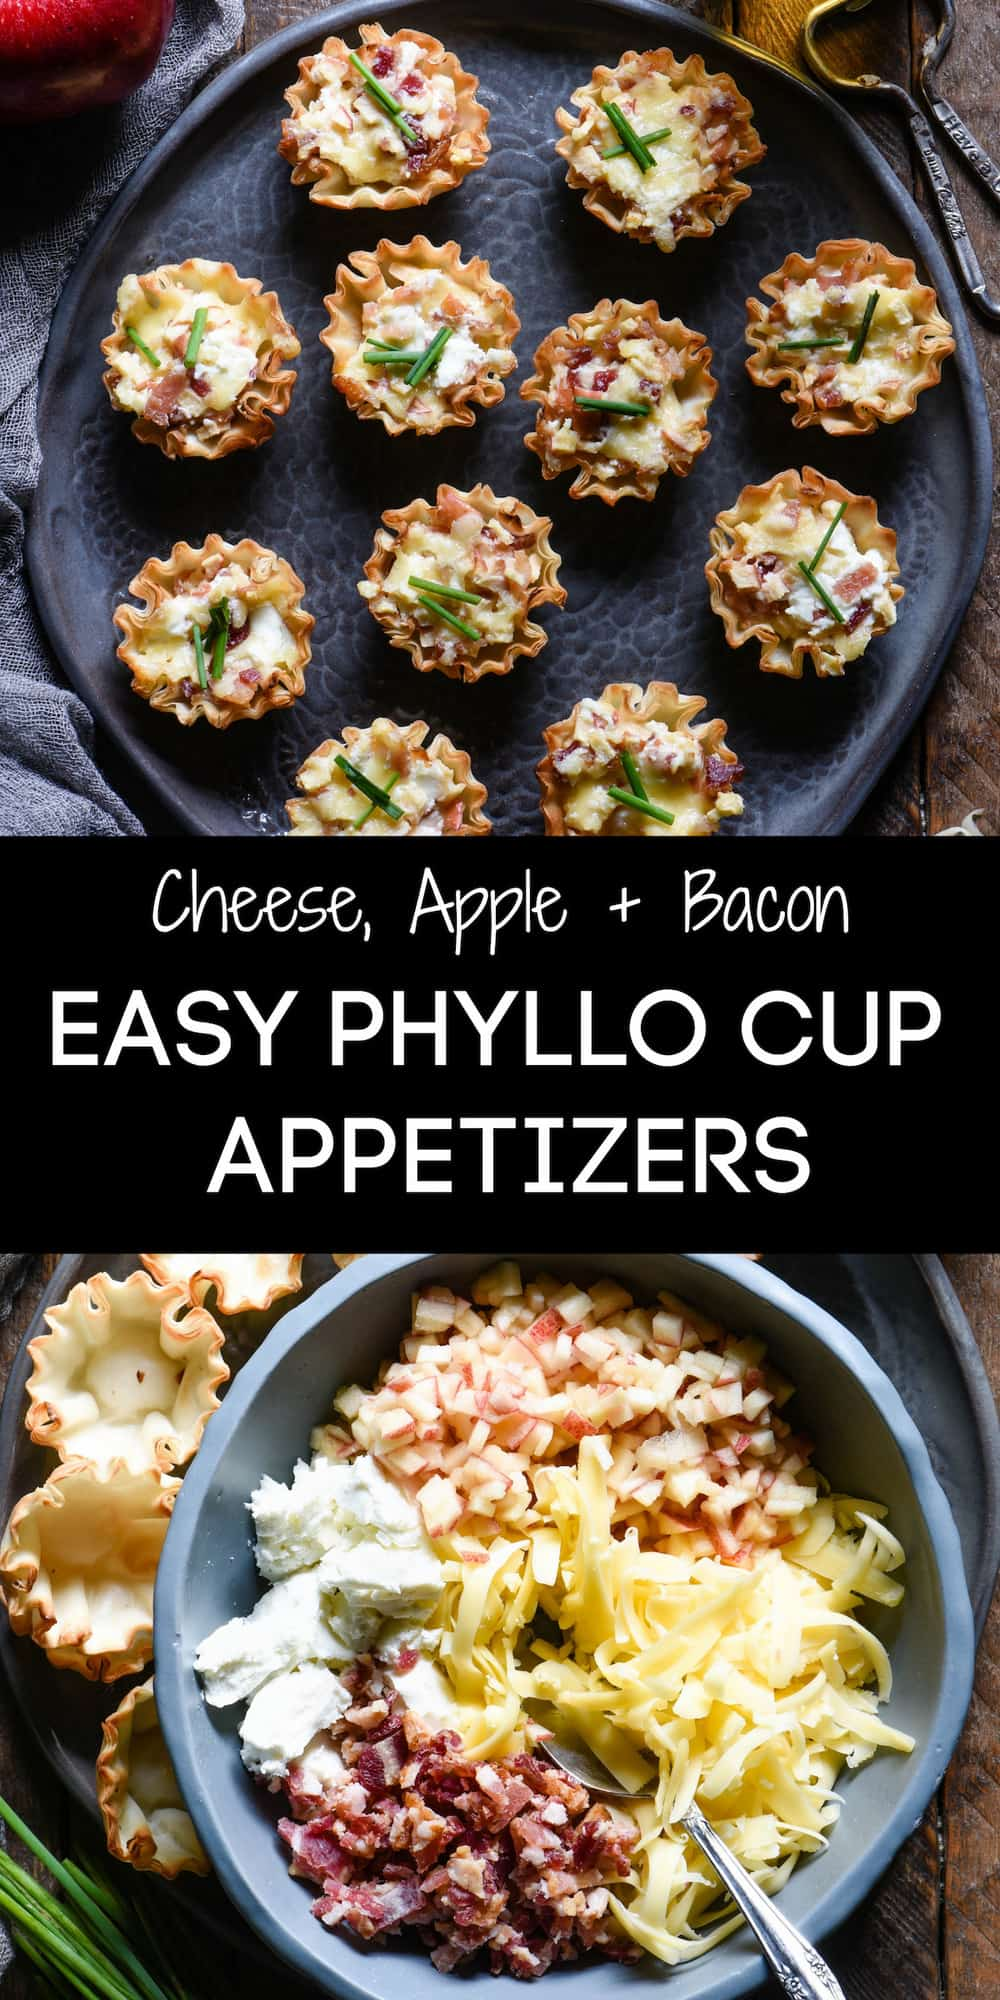 Collage of ingredients and finished recipe photos with overlay: Cheese, Apple + Bacon EASY PHYLLO CUP APPETIZERS